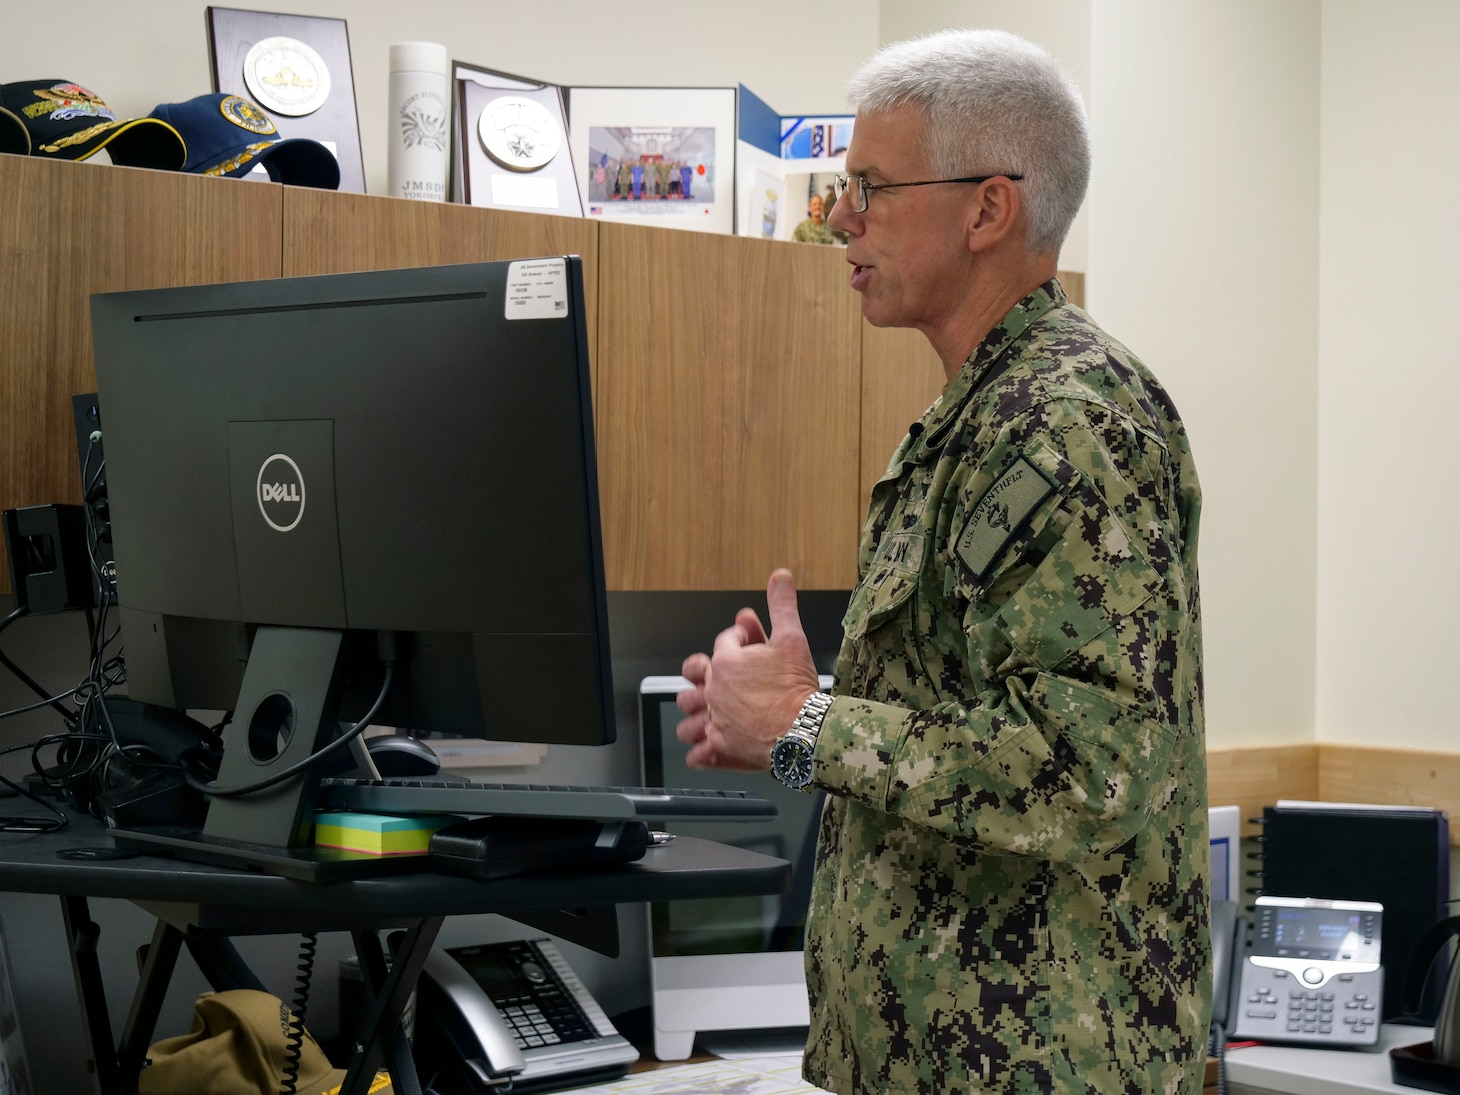 210810-N-IY633-1013 YOKOSUKA, Japan (Aug. 9, 2021) - Commander, U.S. 7th Fleet, Vice Adm. Karl Thomas, provides opening remarks during the Southeast Asia Cooperation and Training (SEACAT) 2021 virtual opening ceremonies, Aug. 10. In its 20th year, SEACAT is a multilateral exercise designed to enhance cooperation among 21 participating Southeast Asian countries and provide mutual support and a common goal to address crises, contingencies, and illegal activities in the maritime domain in support of a free and open Indo-Pacific. (U.S. Navy photo by Mass Communication Specialist 1st Class Amanda S. Kitchner)